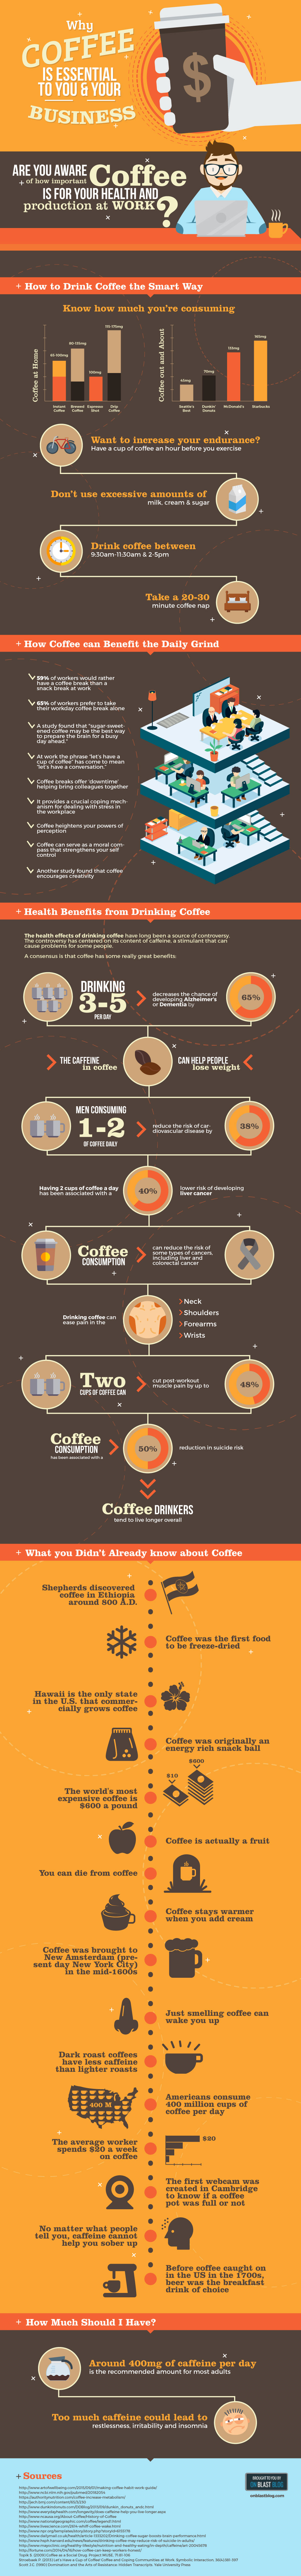 Boosting Productivity with Coffee